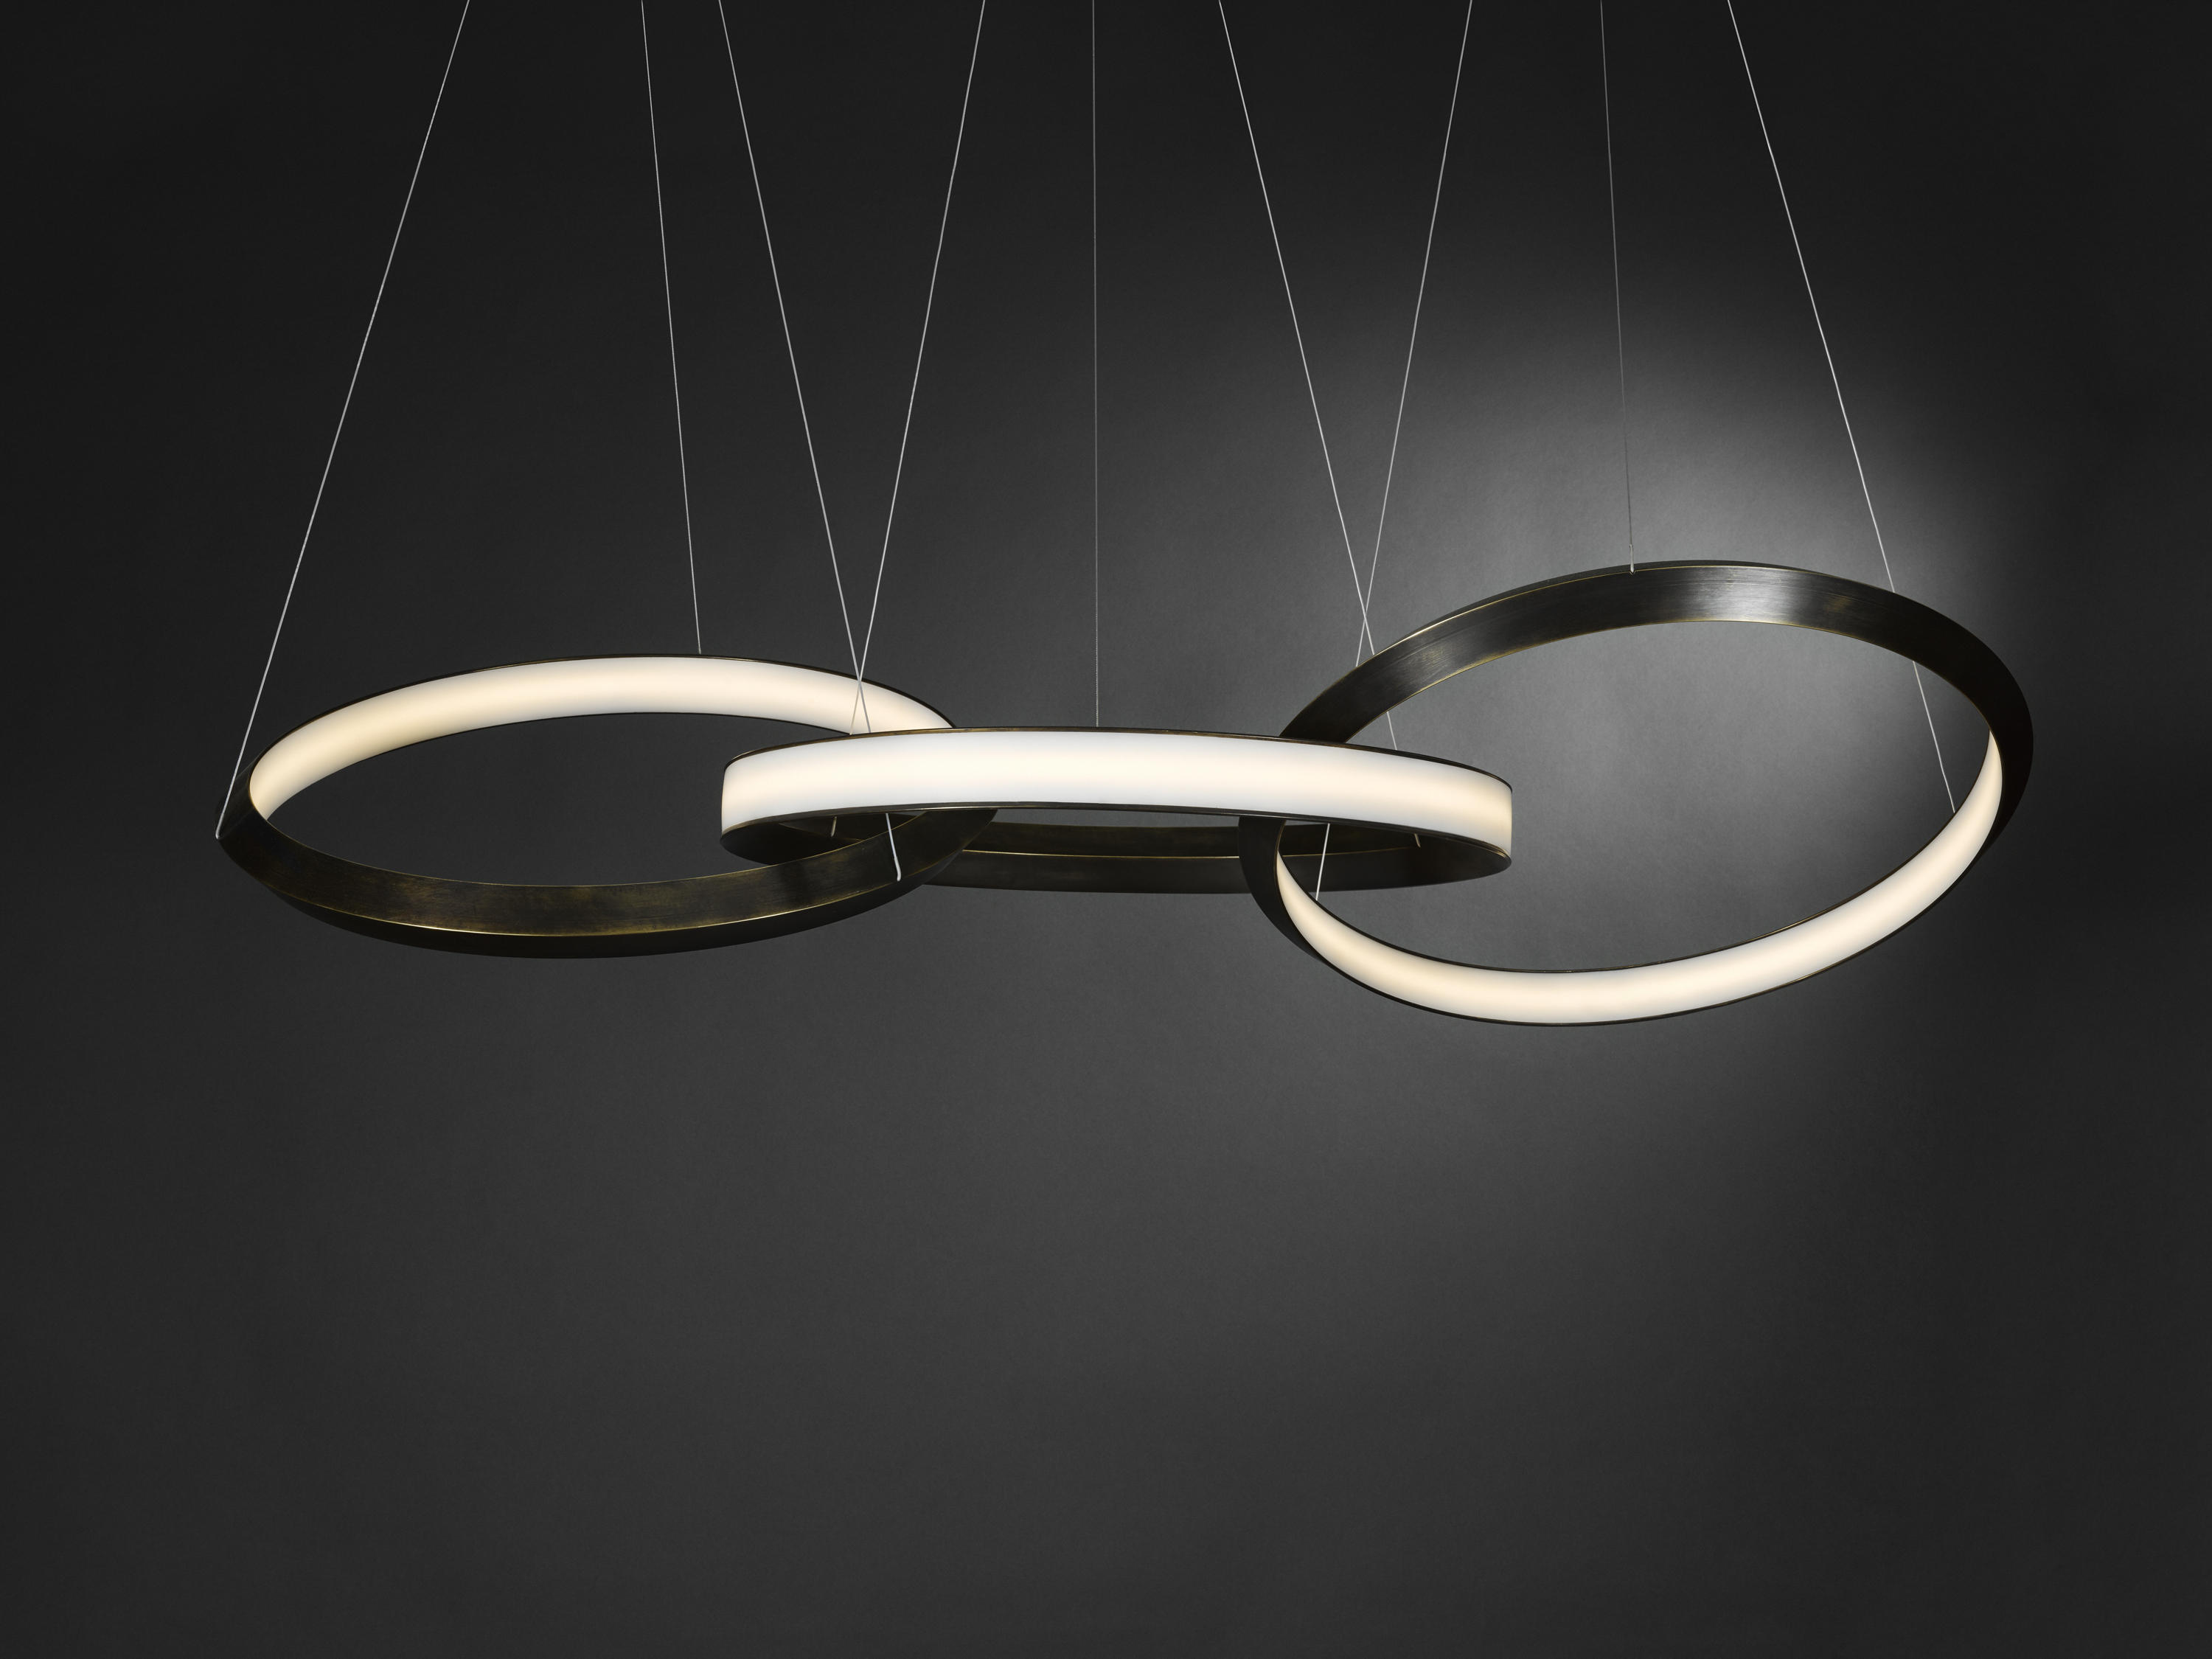 Oracle 3 Ring Suspended Lights From Christopher Boots